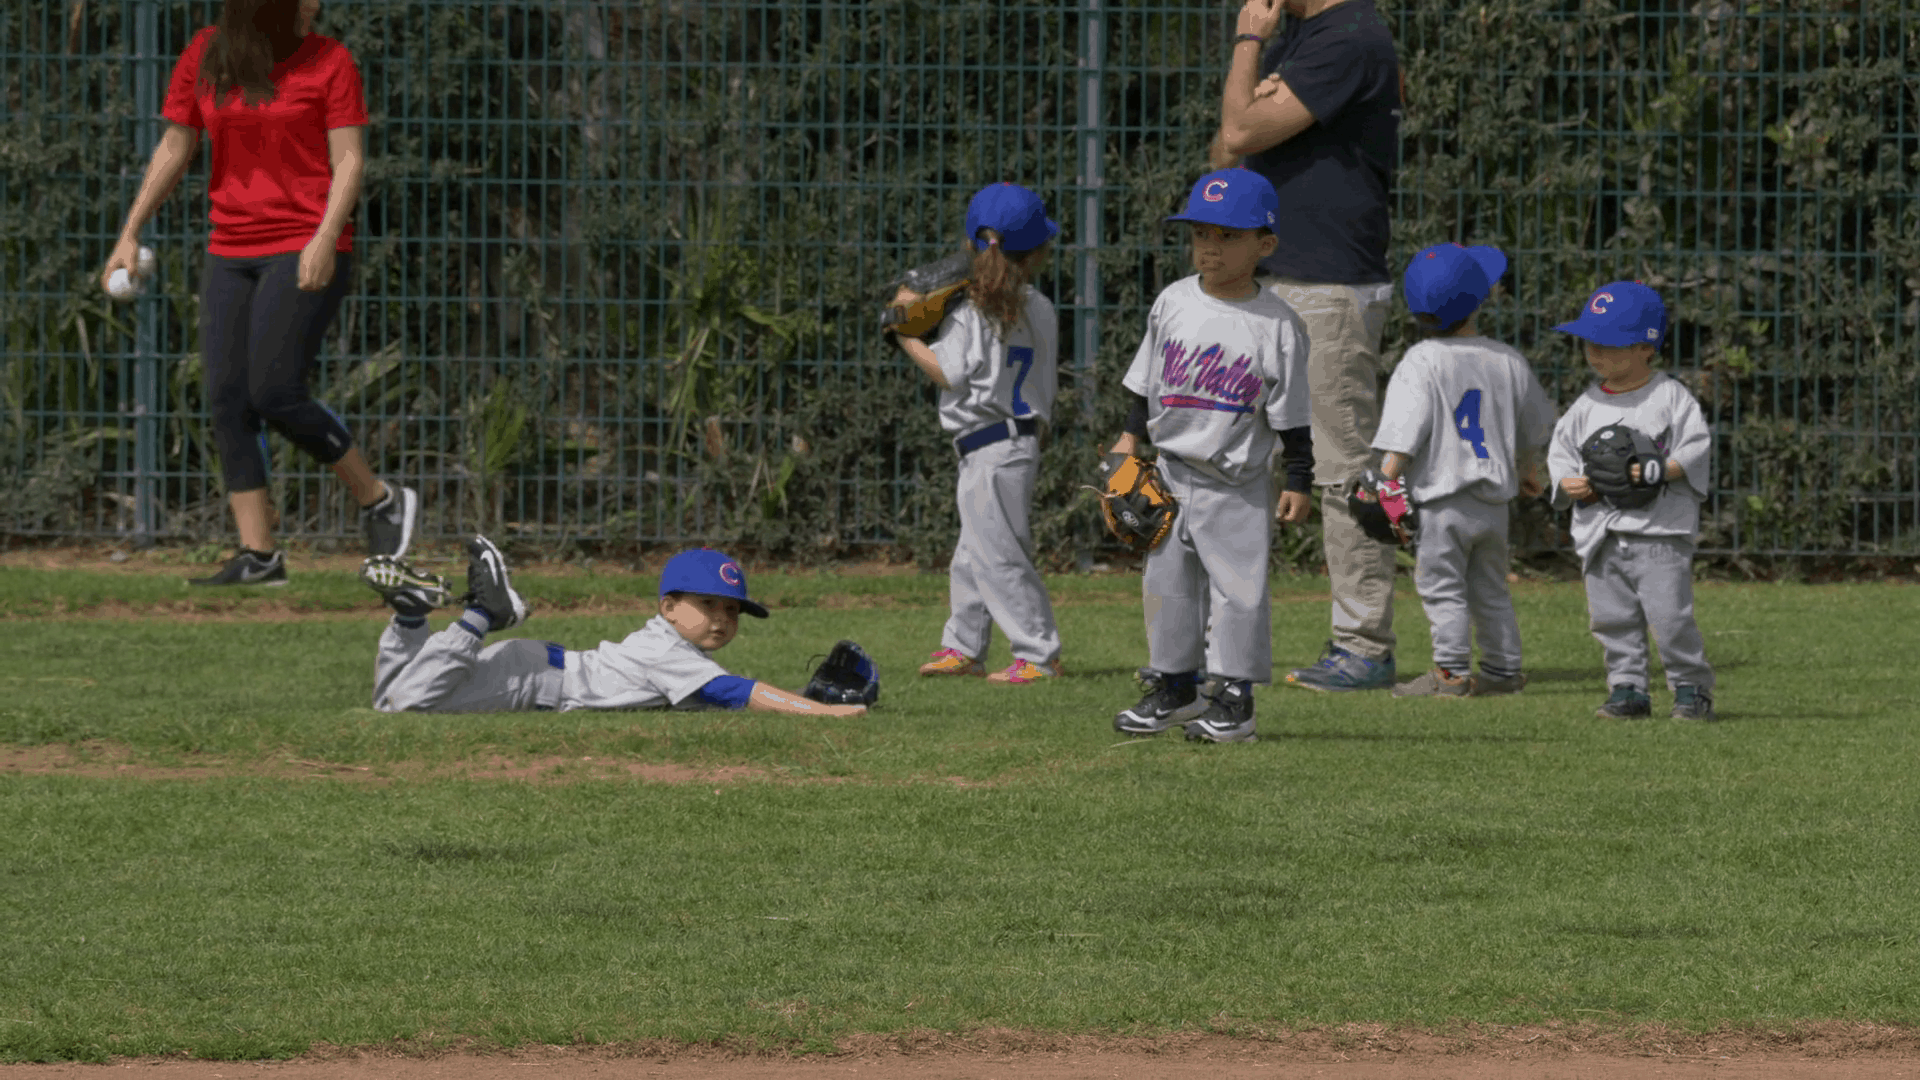 baseball drills for 4 year olds